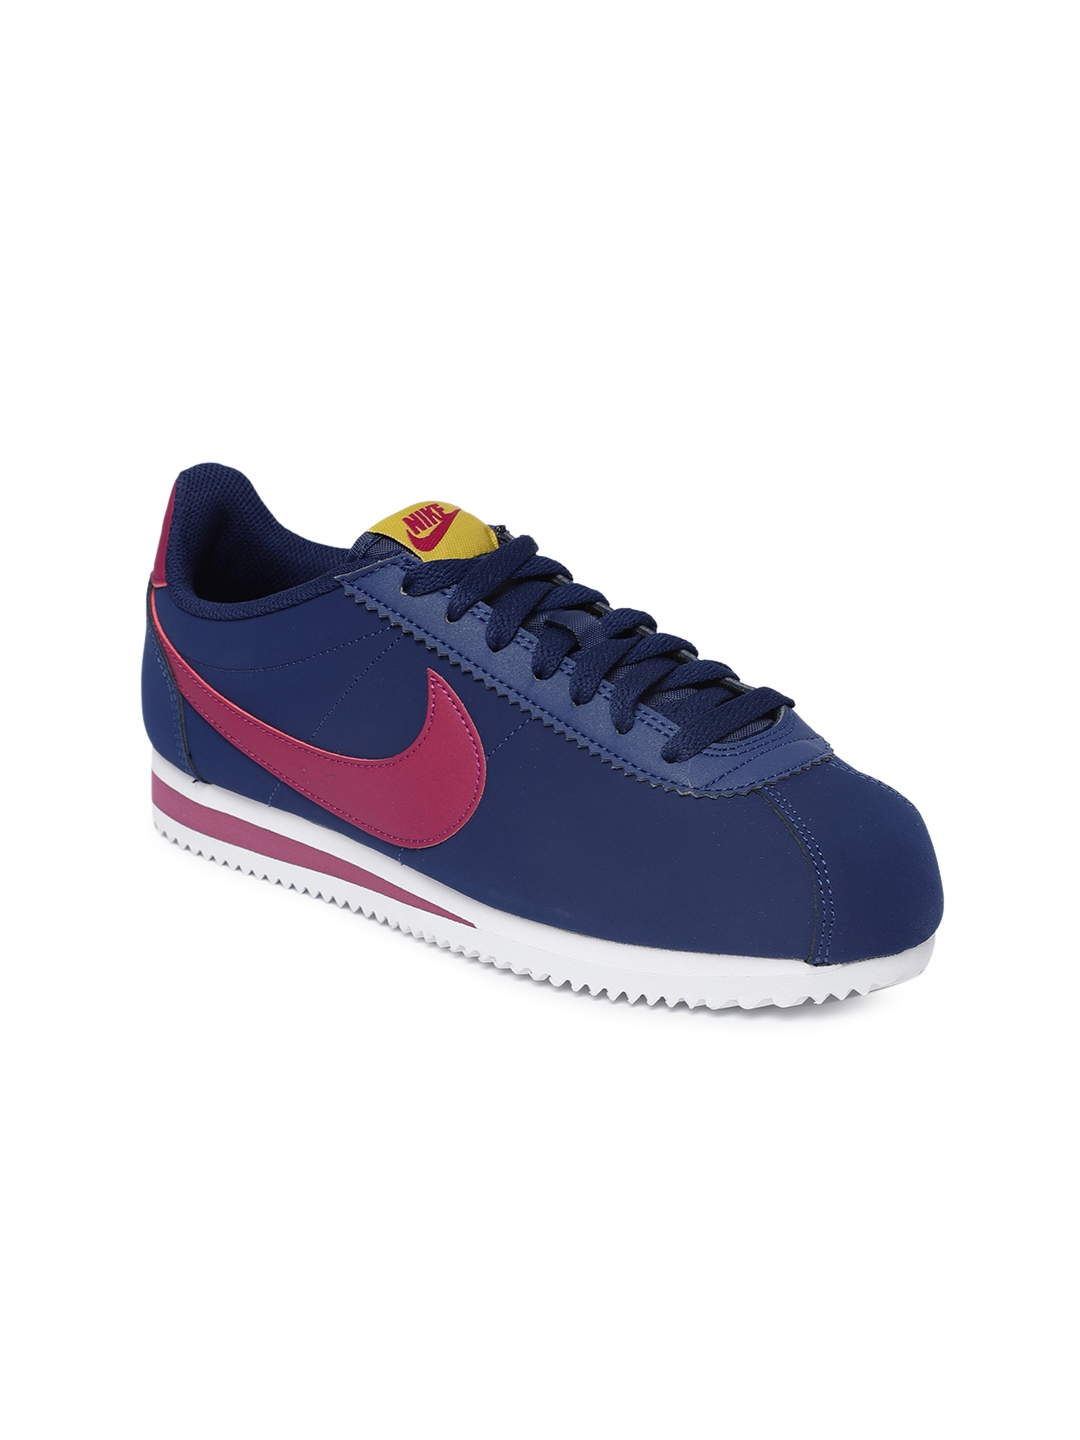 online store c11f6 ba748 Buy Nike Women Blue CLASSIC CORTEZ Leather Sneakers - Casual Shoes ...